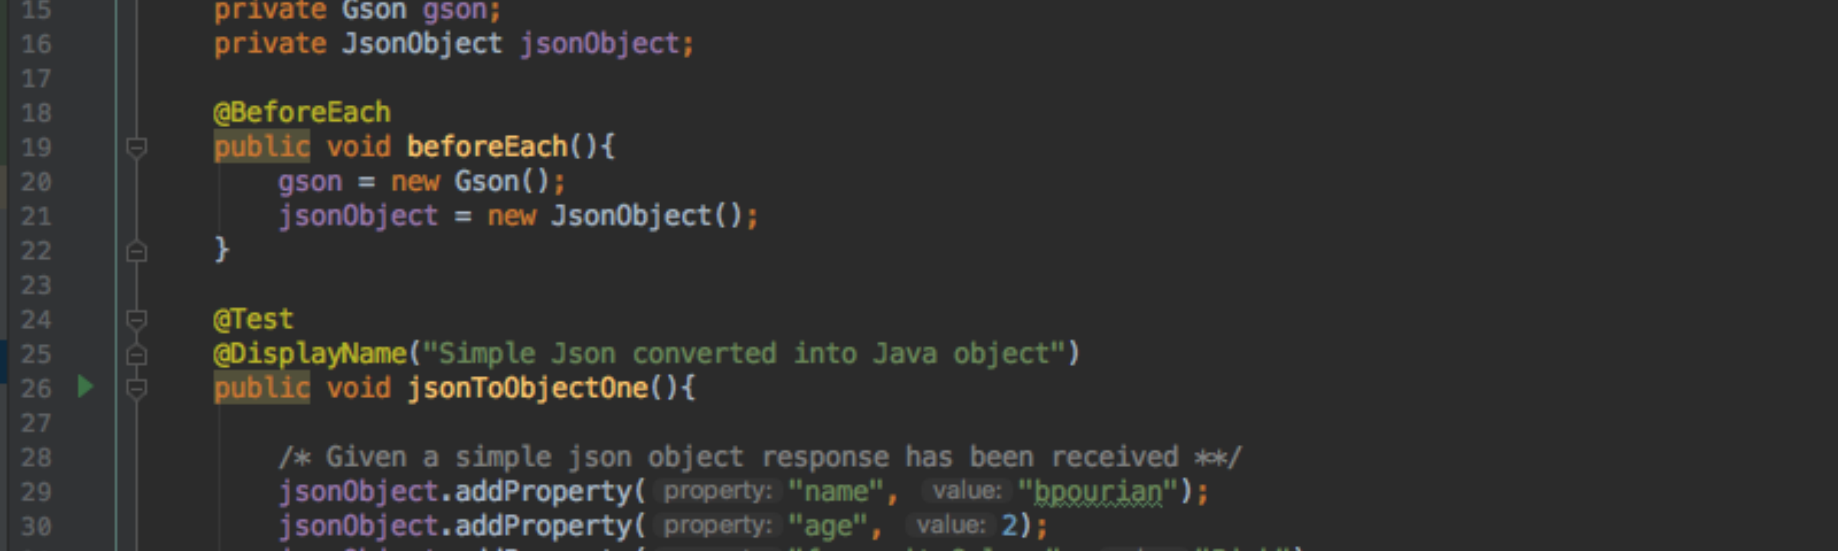 How to create a Java Object from a JSON object - Benjamin Pourian